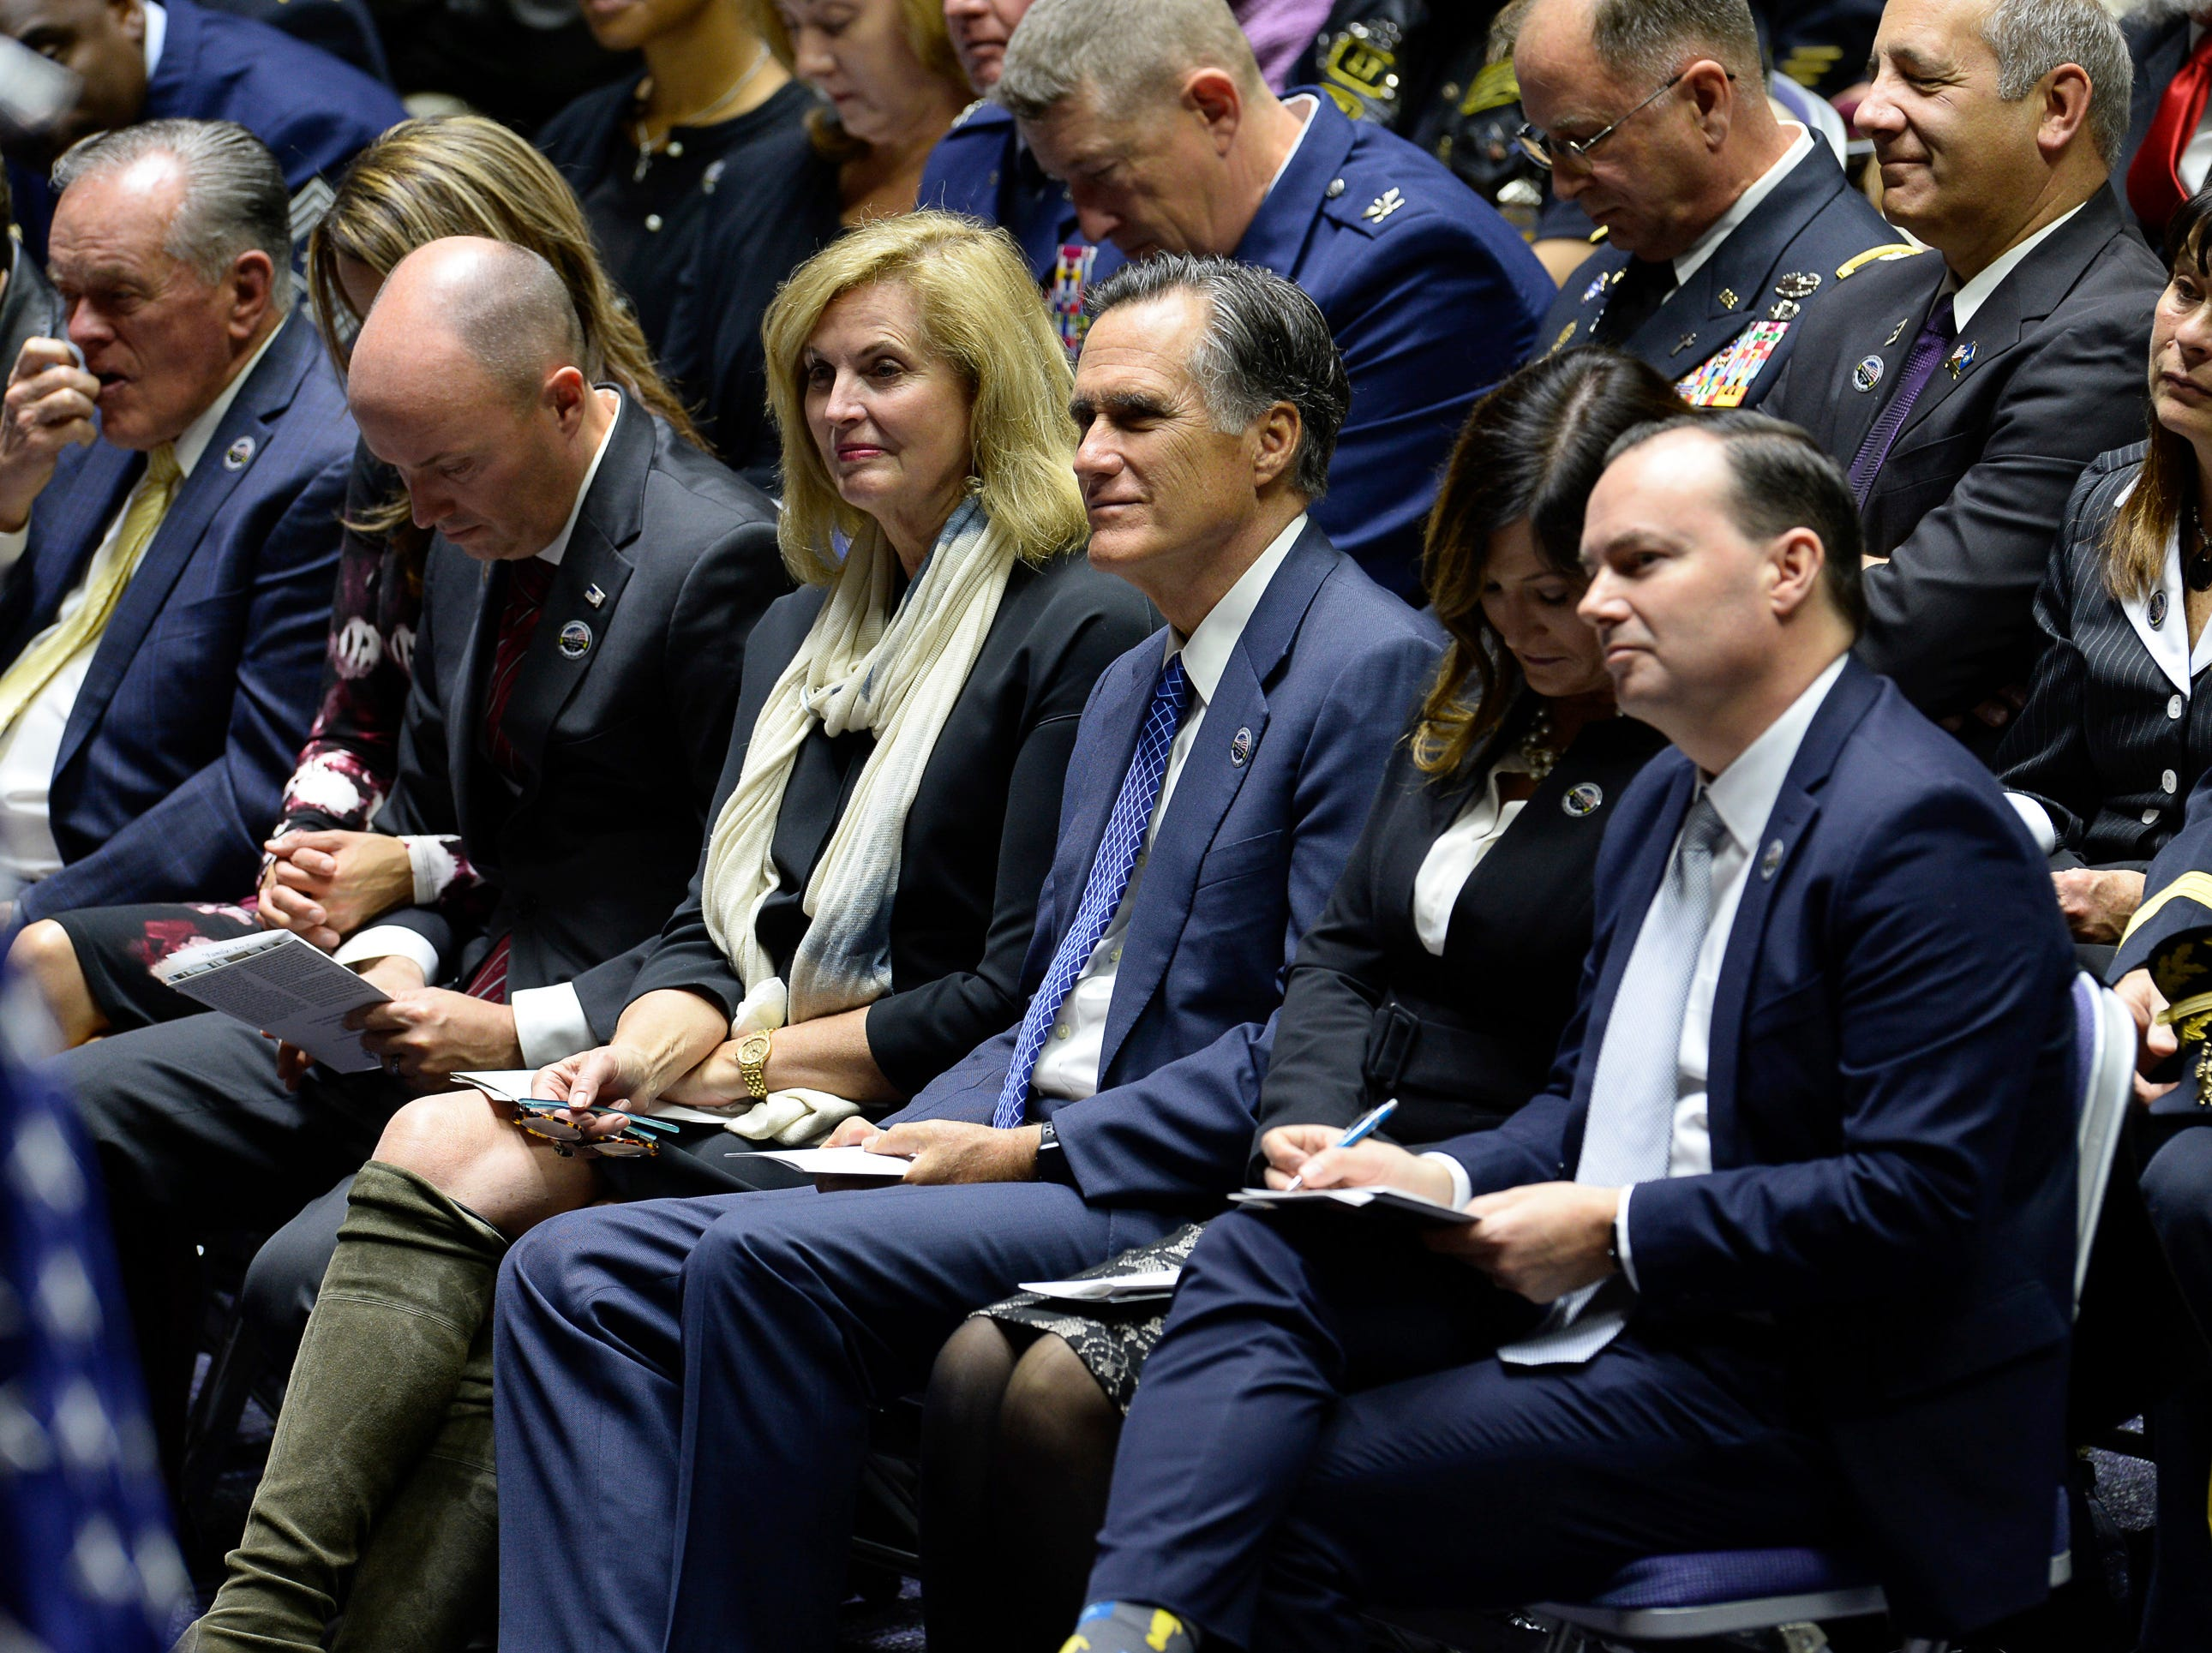 Sen.-elect Mitt Romney, center, attends funeral services for Maj. Brent R. Taylor, alongside Sen. Mike Lee and Lt. Gov. Spencer Cox at Weber State University's Dee Event Center in Ogden, Utah on Saturday, Nov. 17, 2018.